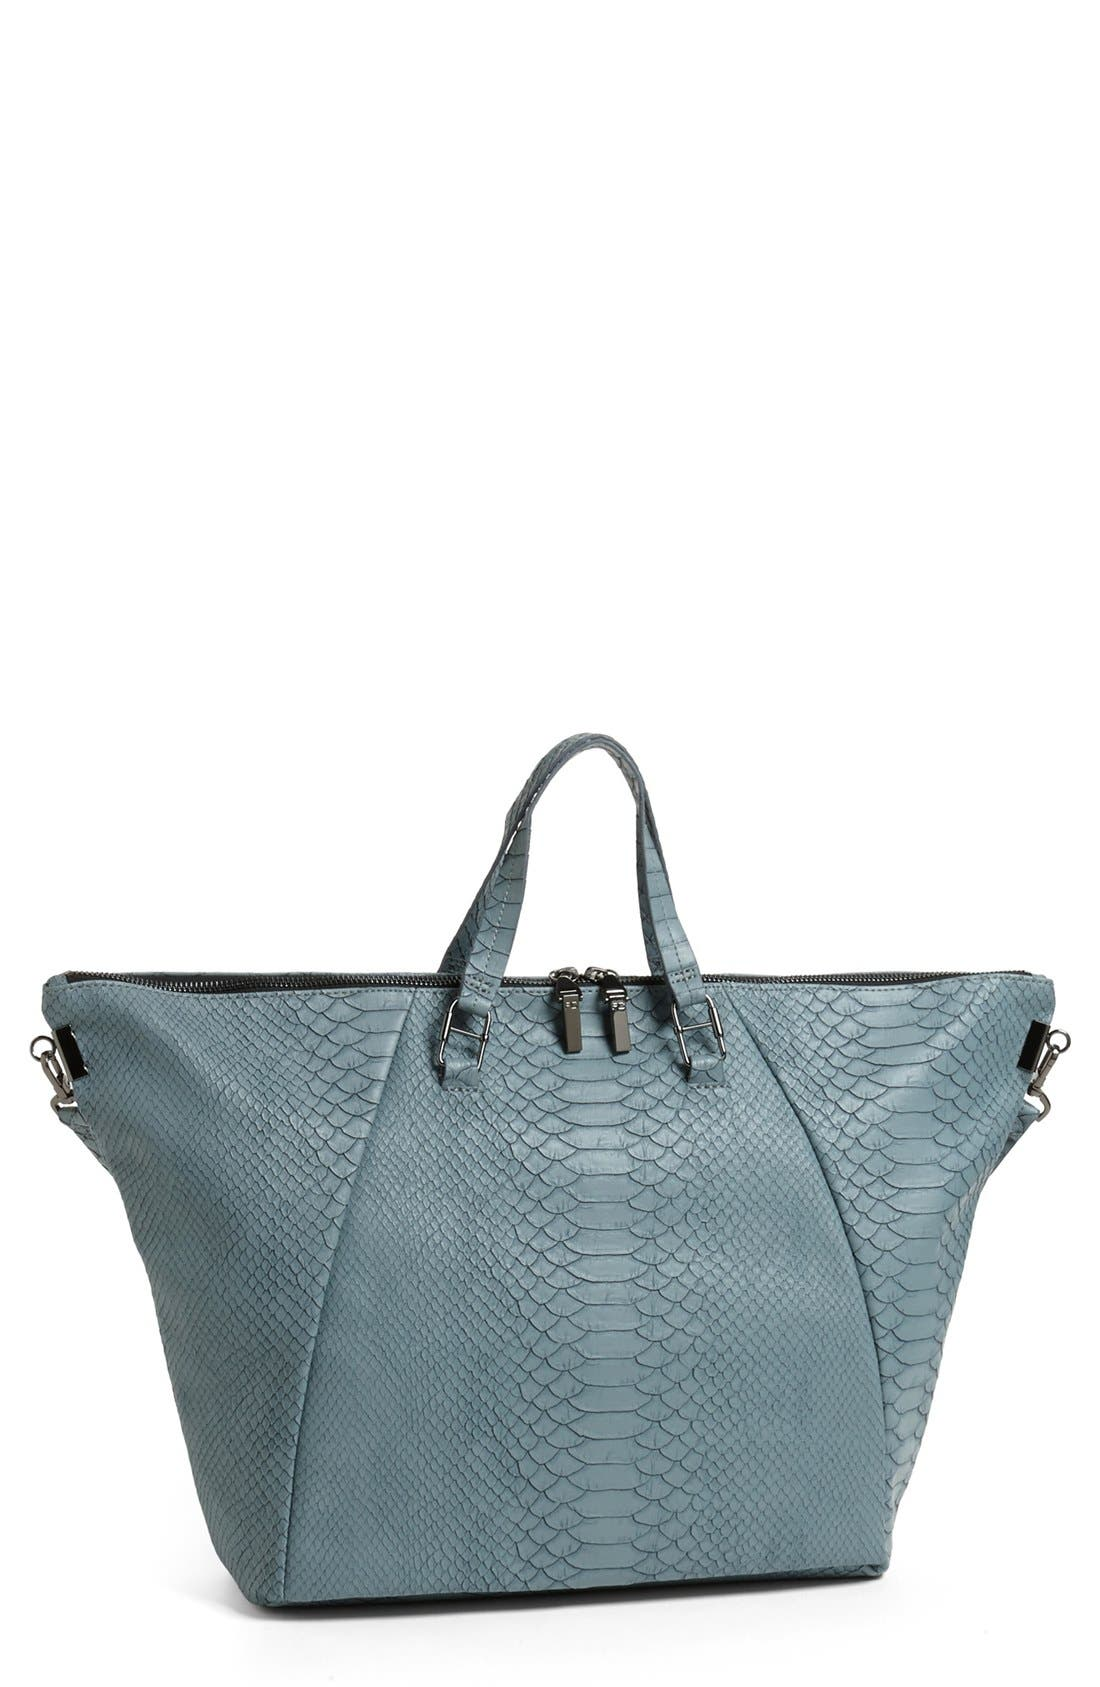 Alternate Image 1 Selected - French Connection 'Cord - Medium' Dome Tote